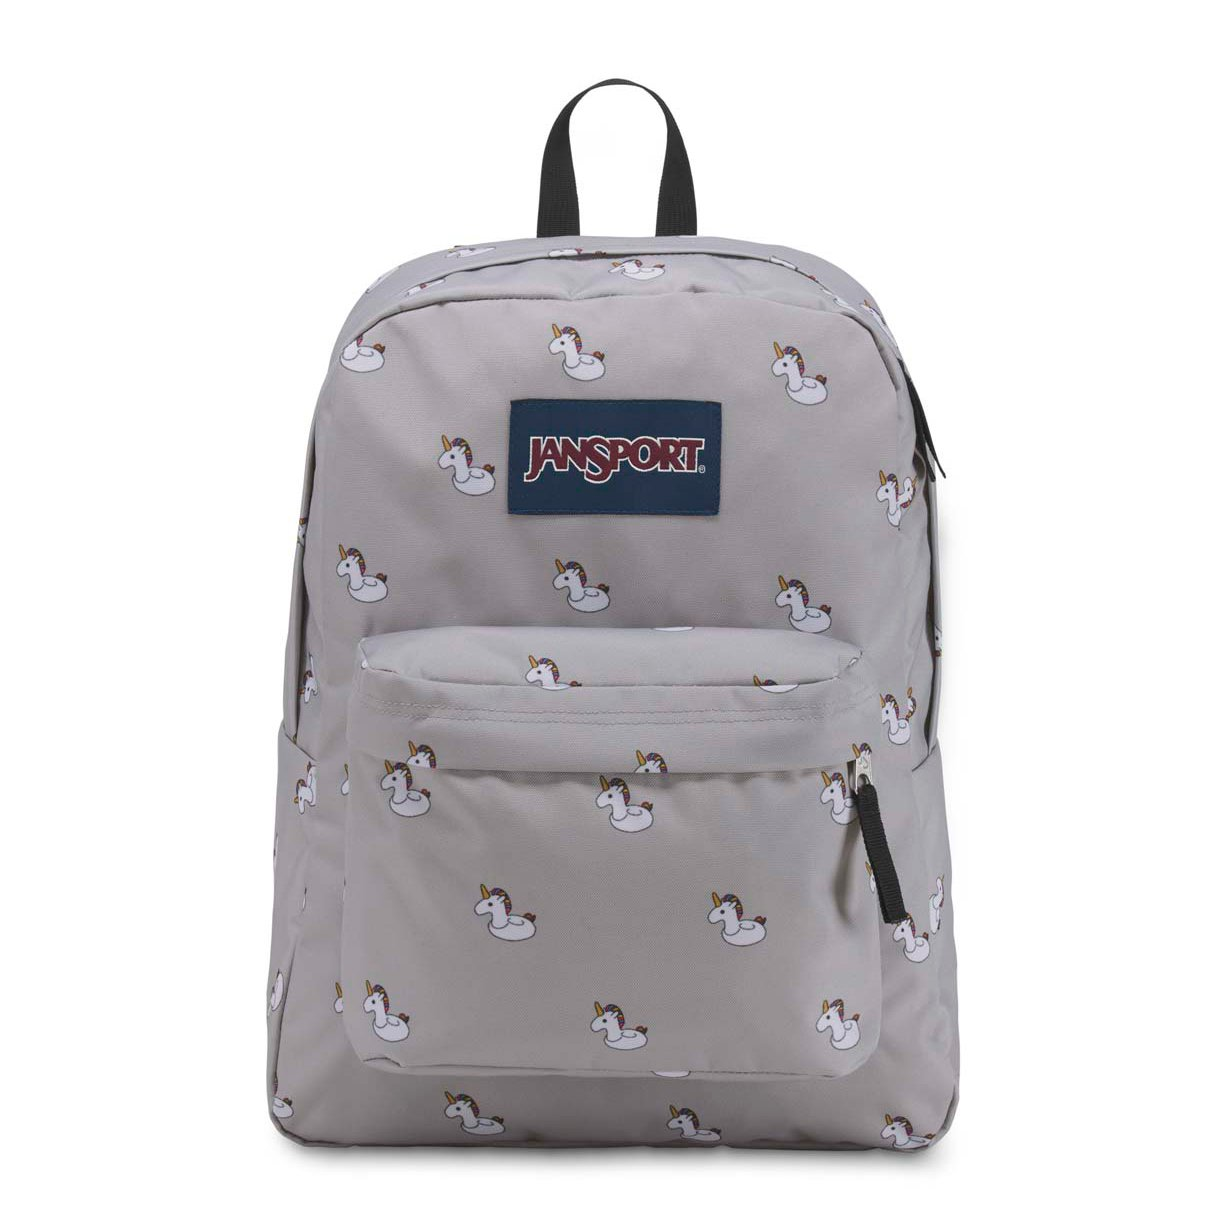 JanSport Unisex Superbreak Back Pack, Unicorn, One Size